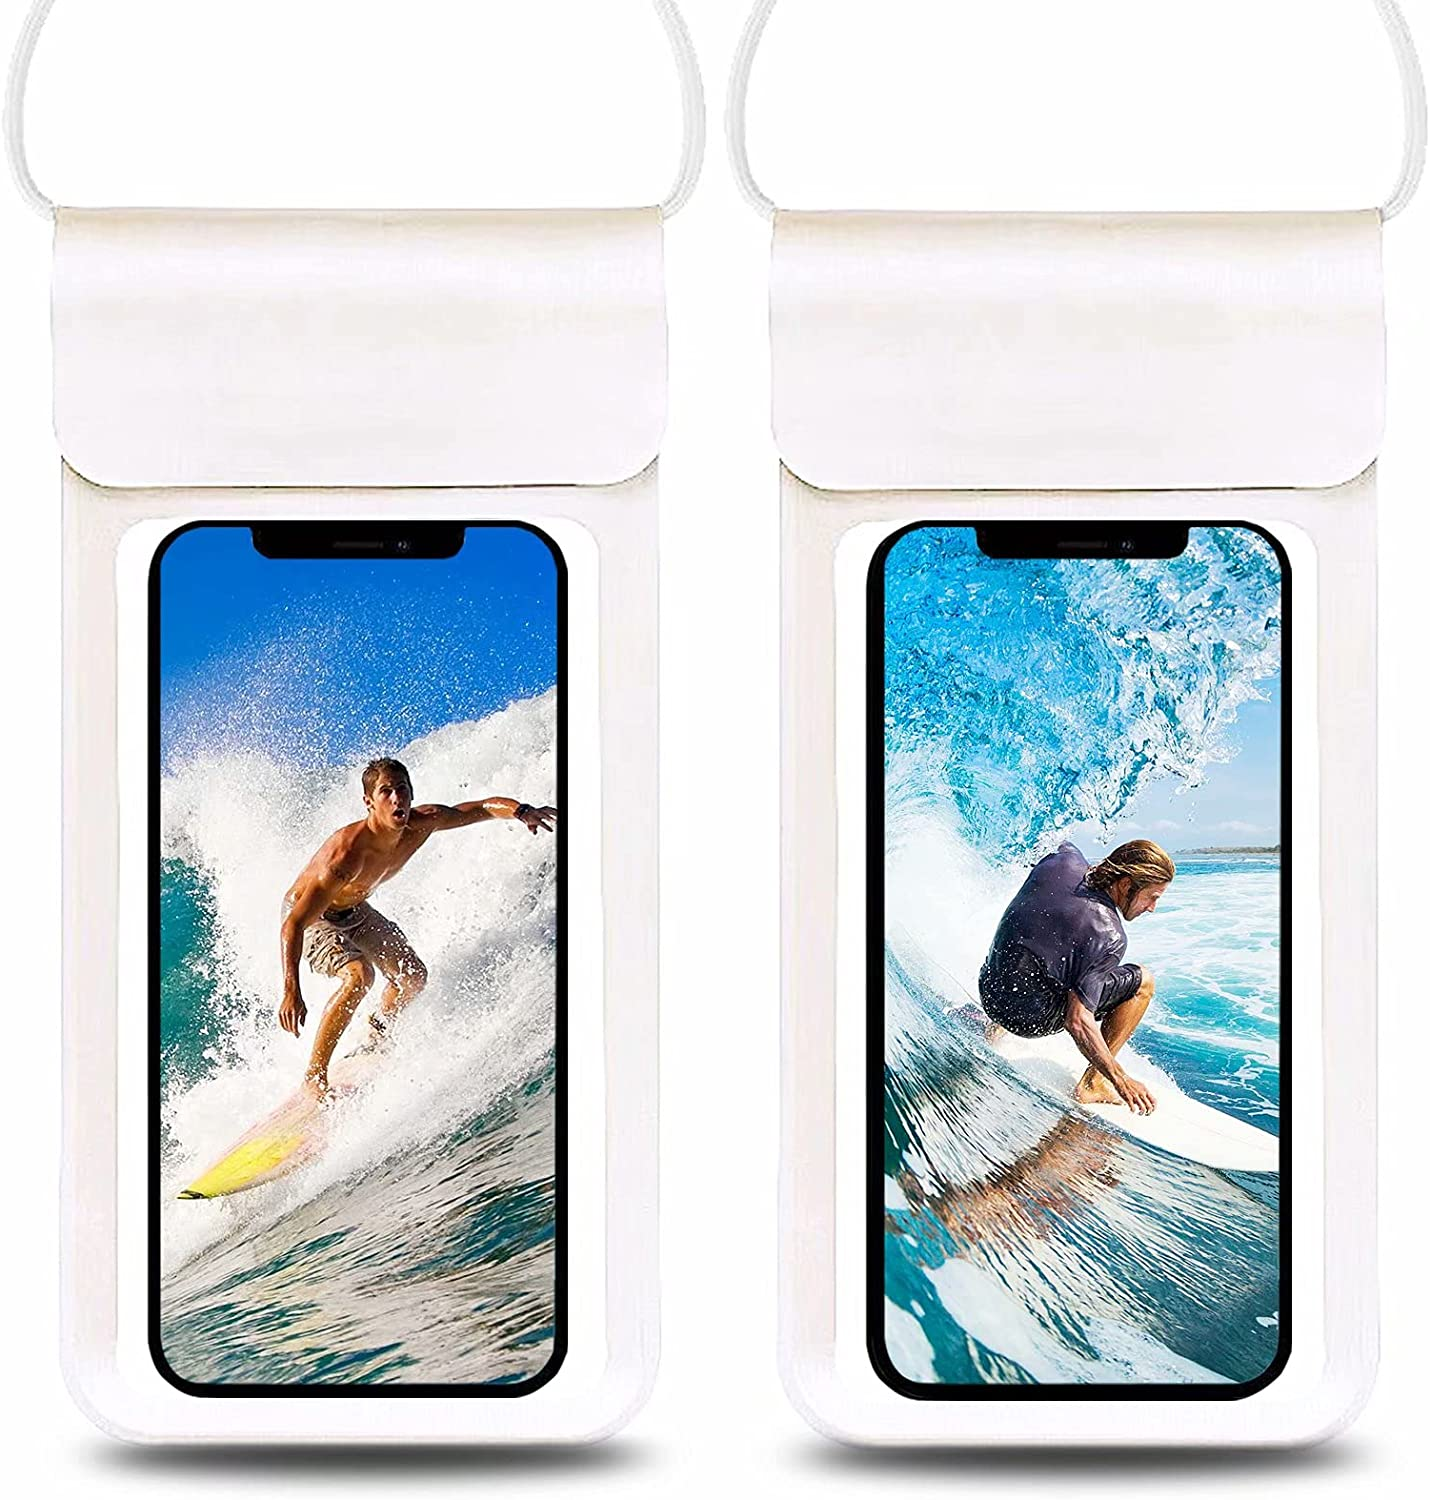 CJJCCF Waterproof Phone Pouch,Universal Waterproof Phone Bag,Underwater Dry Bag with Lanyard Take Pictures Compatible with iPhone 12 SE2 11 Pro XS Max XR X 8 7 6s Plus Pixel Up to 6.9